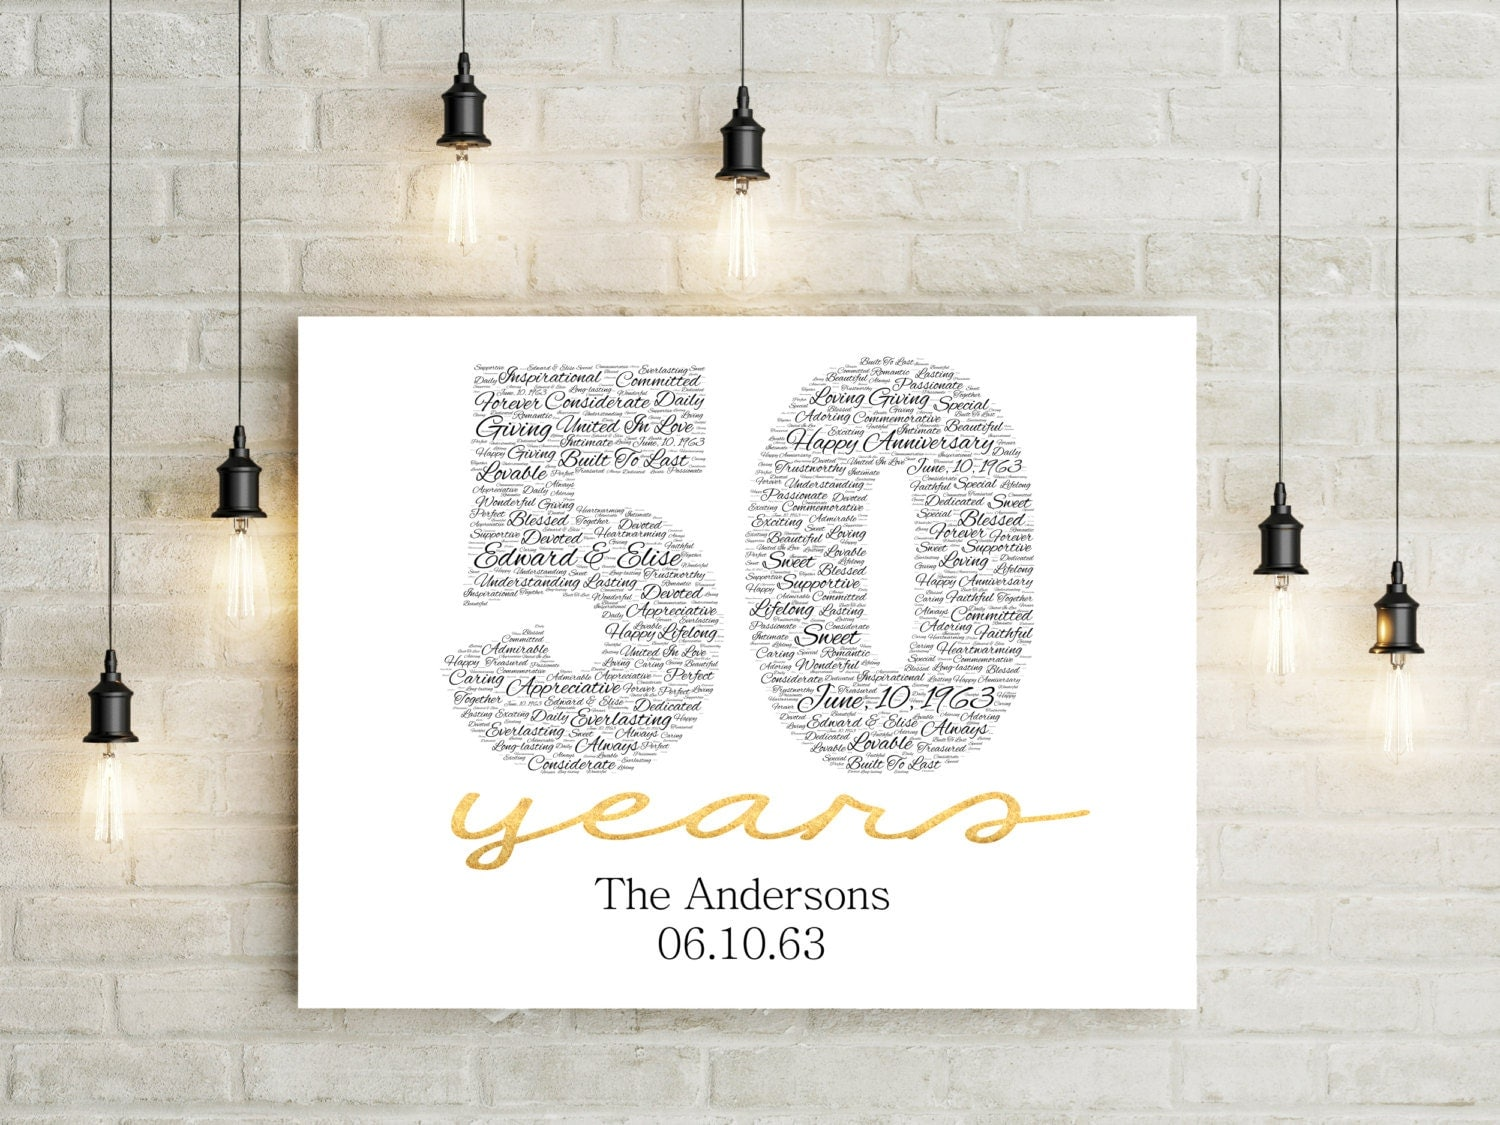 Fiftieth Wedding Anniversary Gifts: 50th Anniversary Gift CANVAS Golden Wedding Anniversary Gift